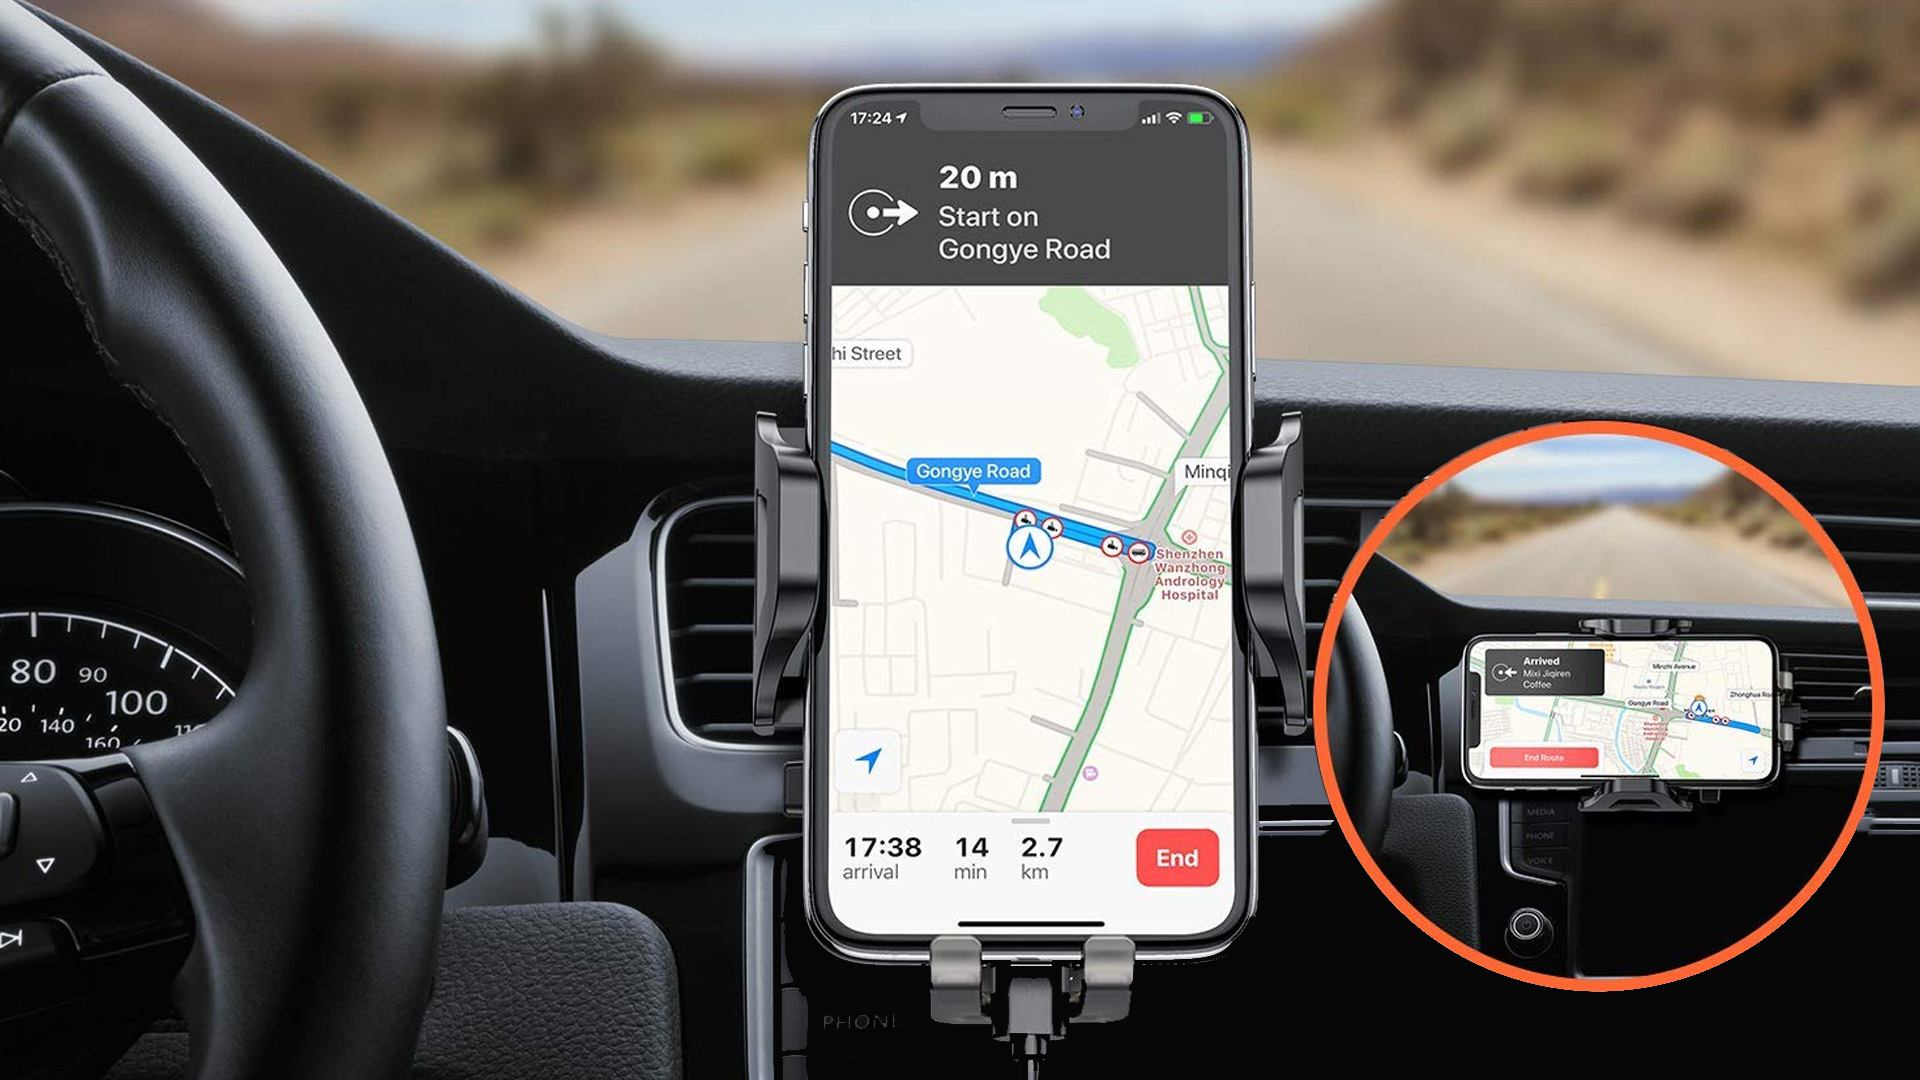 Best Car Mounts for iPhone 11, iPhone 11 Pro and iPhone Pro Max